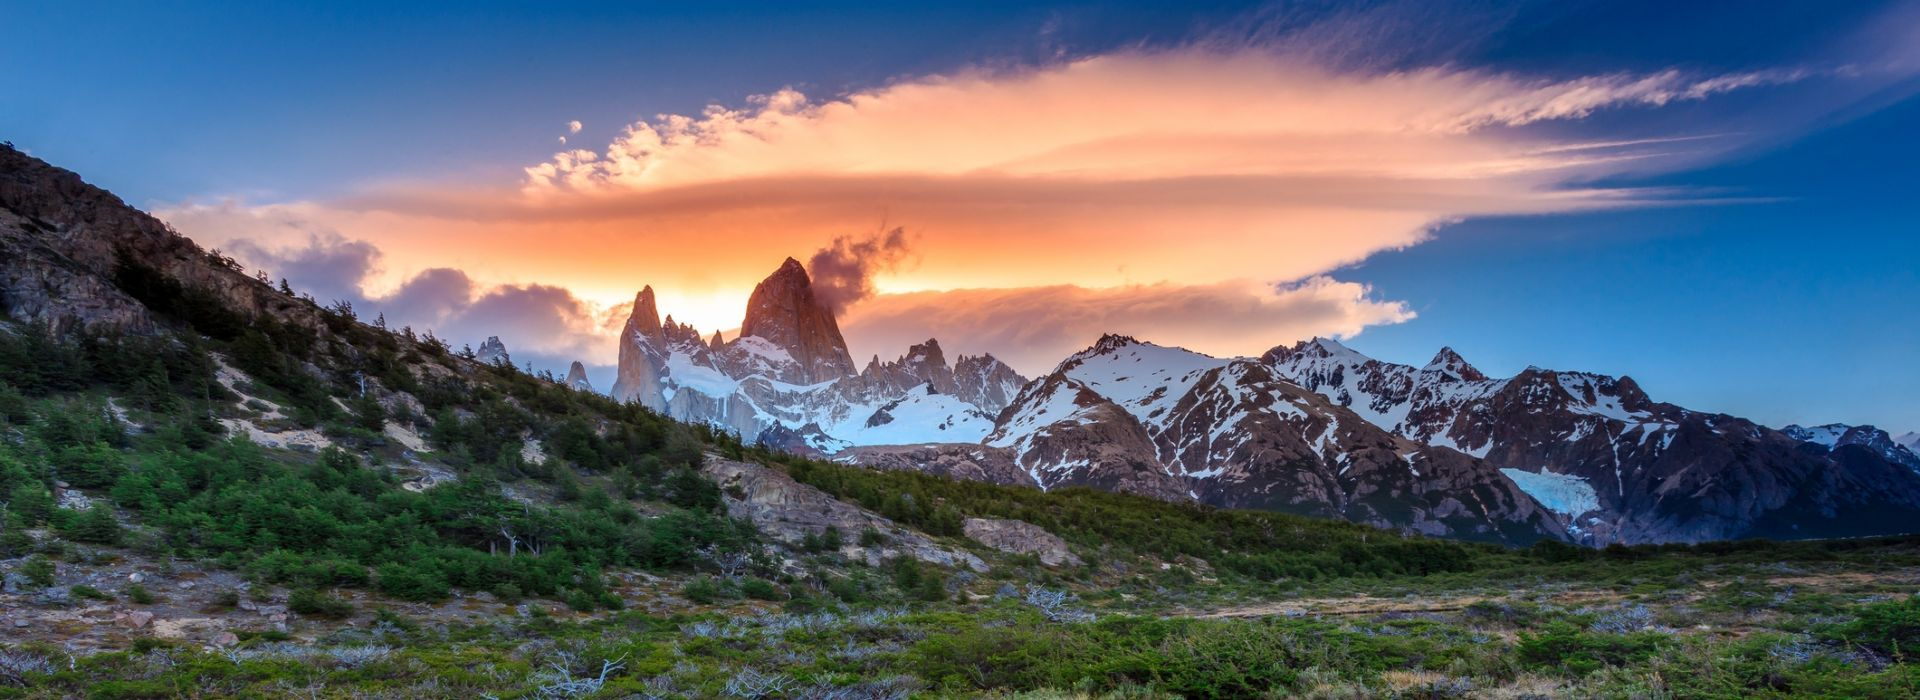 National parks Tours in Ushuaia